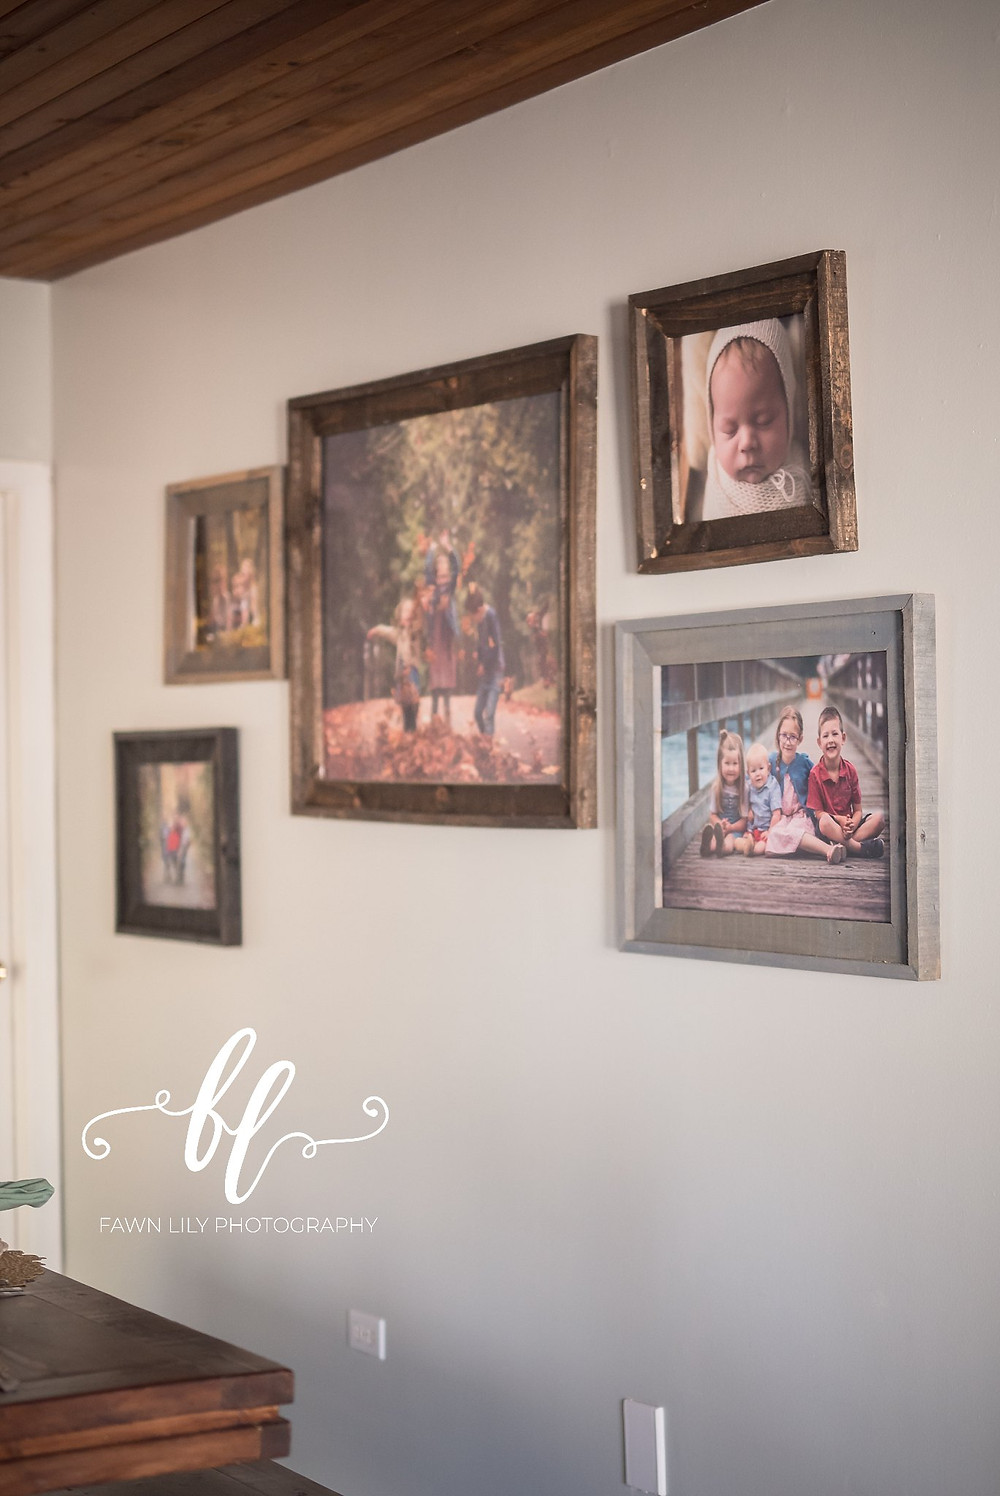 How to Plan a Wall Art Display, Victoria BC Family Photographer, Fawn Lily Photography, How to make a Wall Gallery, How to pick outfits for photos, Family photos